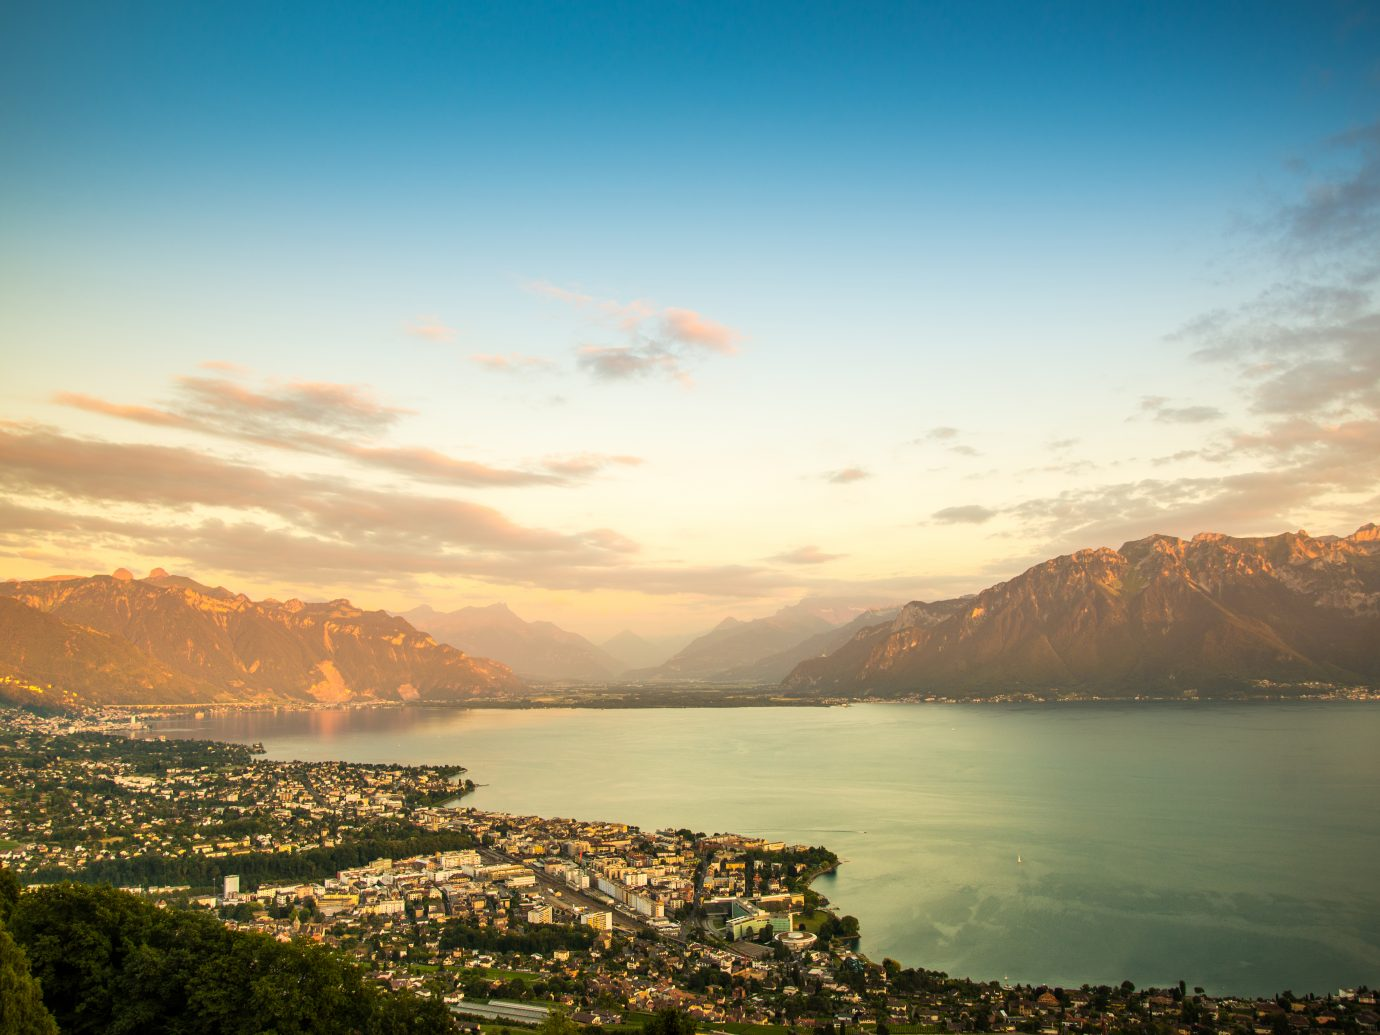 A beautiful view of Montreux besides Lake Geneva in the summertime on sunny day. Switzerland